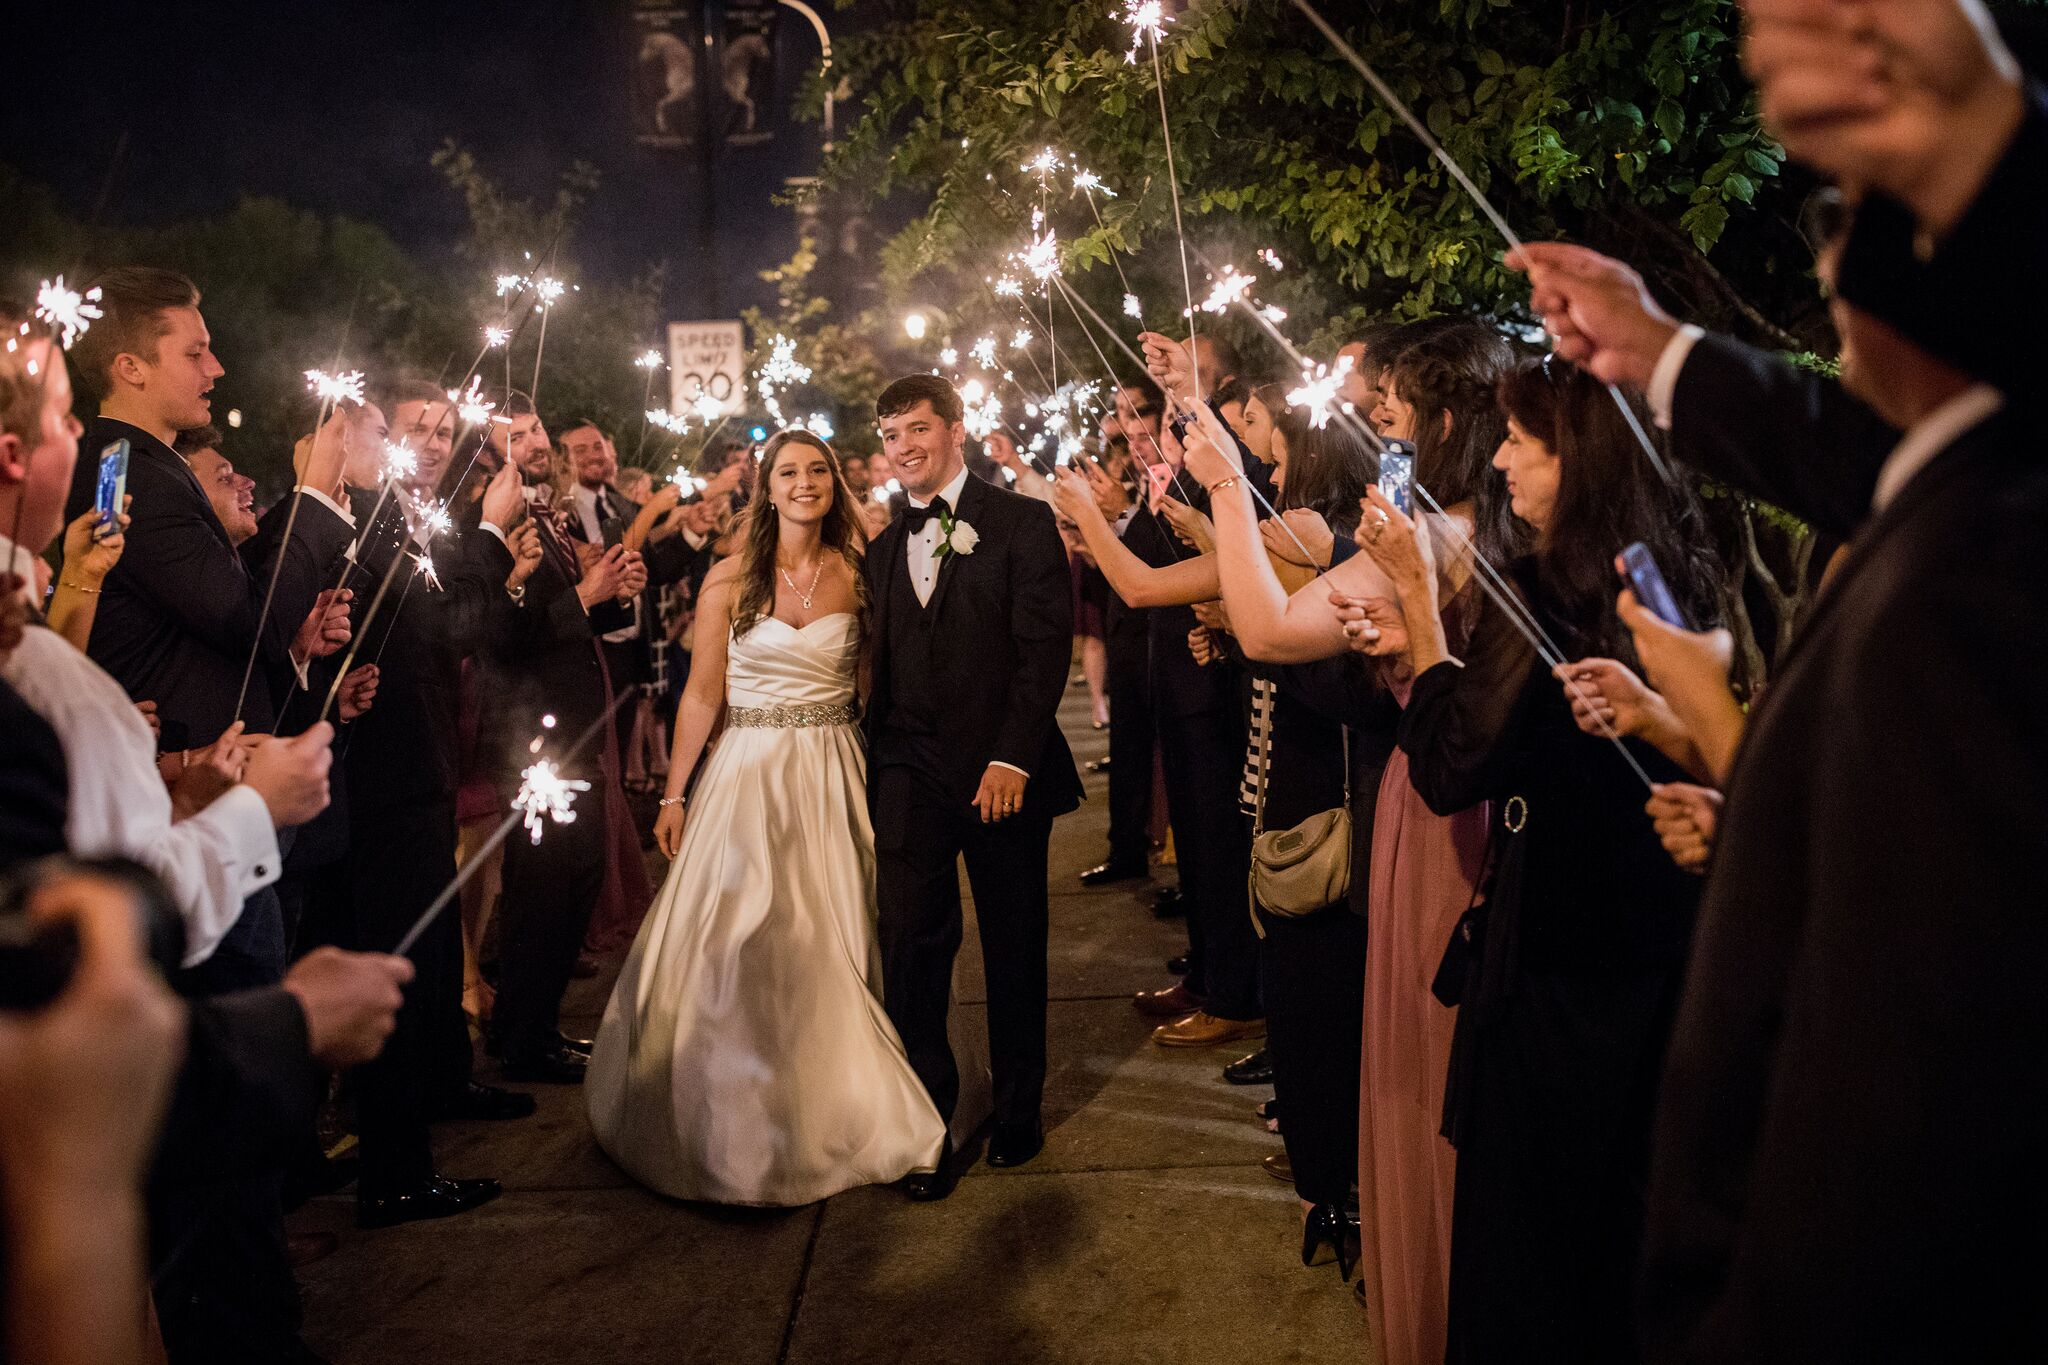 Christina and Clint's wedding sparkler send off